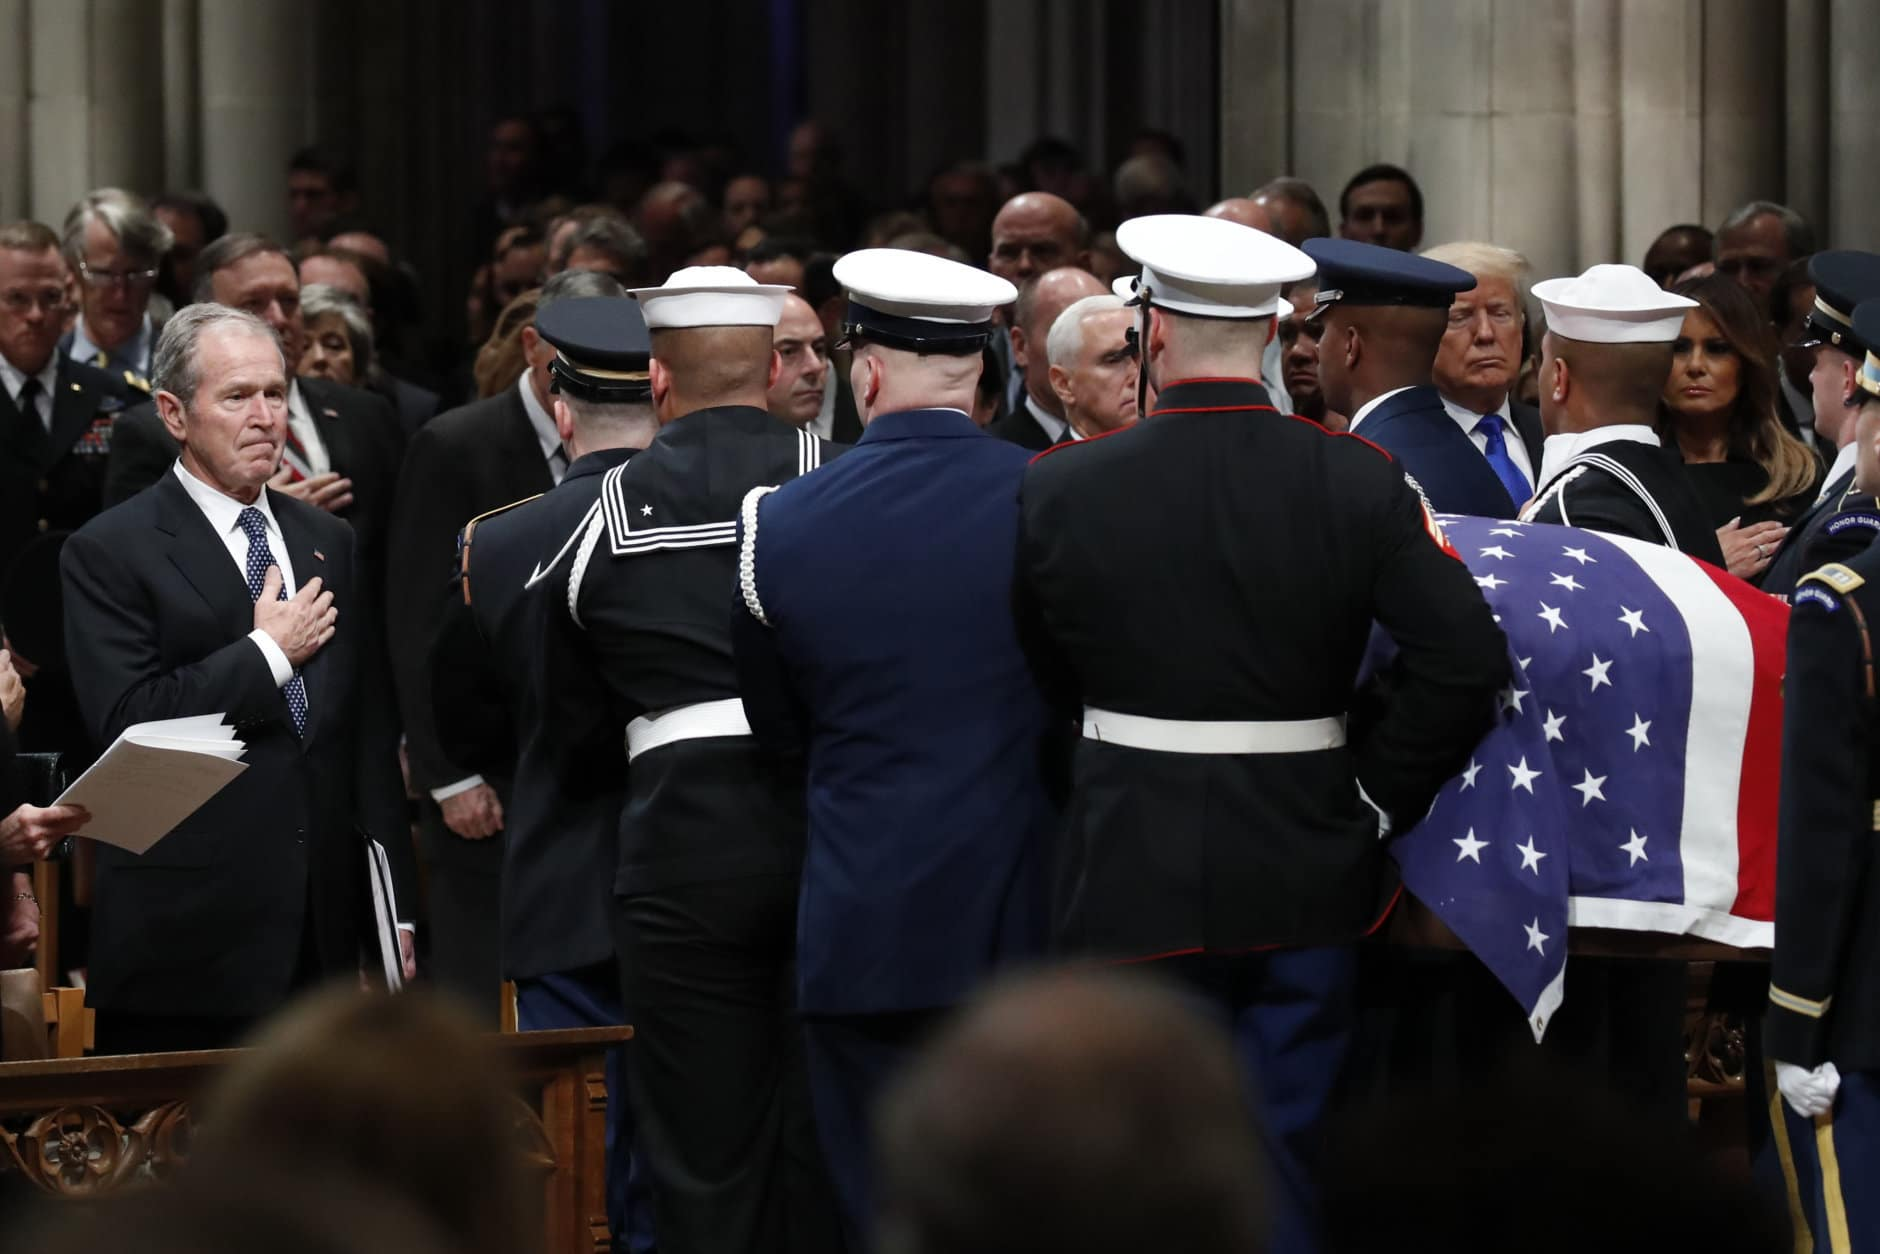 Former President George W. Bush places his hand over his heart as the flag-draped casket of former President George H.W. Bush is carried by a joint services military honor guard after the State Funeral at the National Cathedral, Wednesday, Dec. 5, 2018, in Washington. (AP Photo/Alex Brandon, Pool)